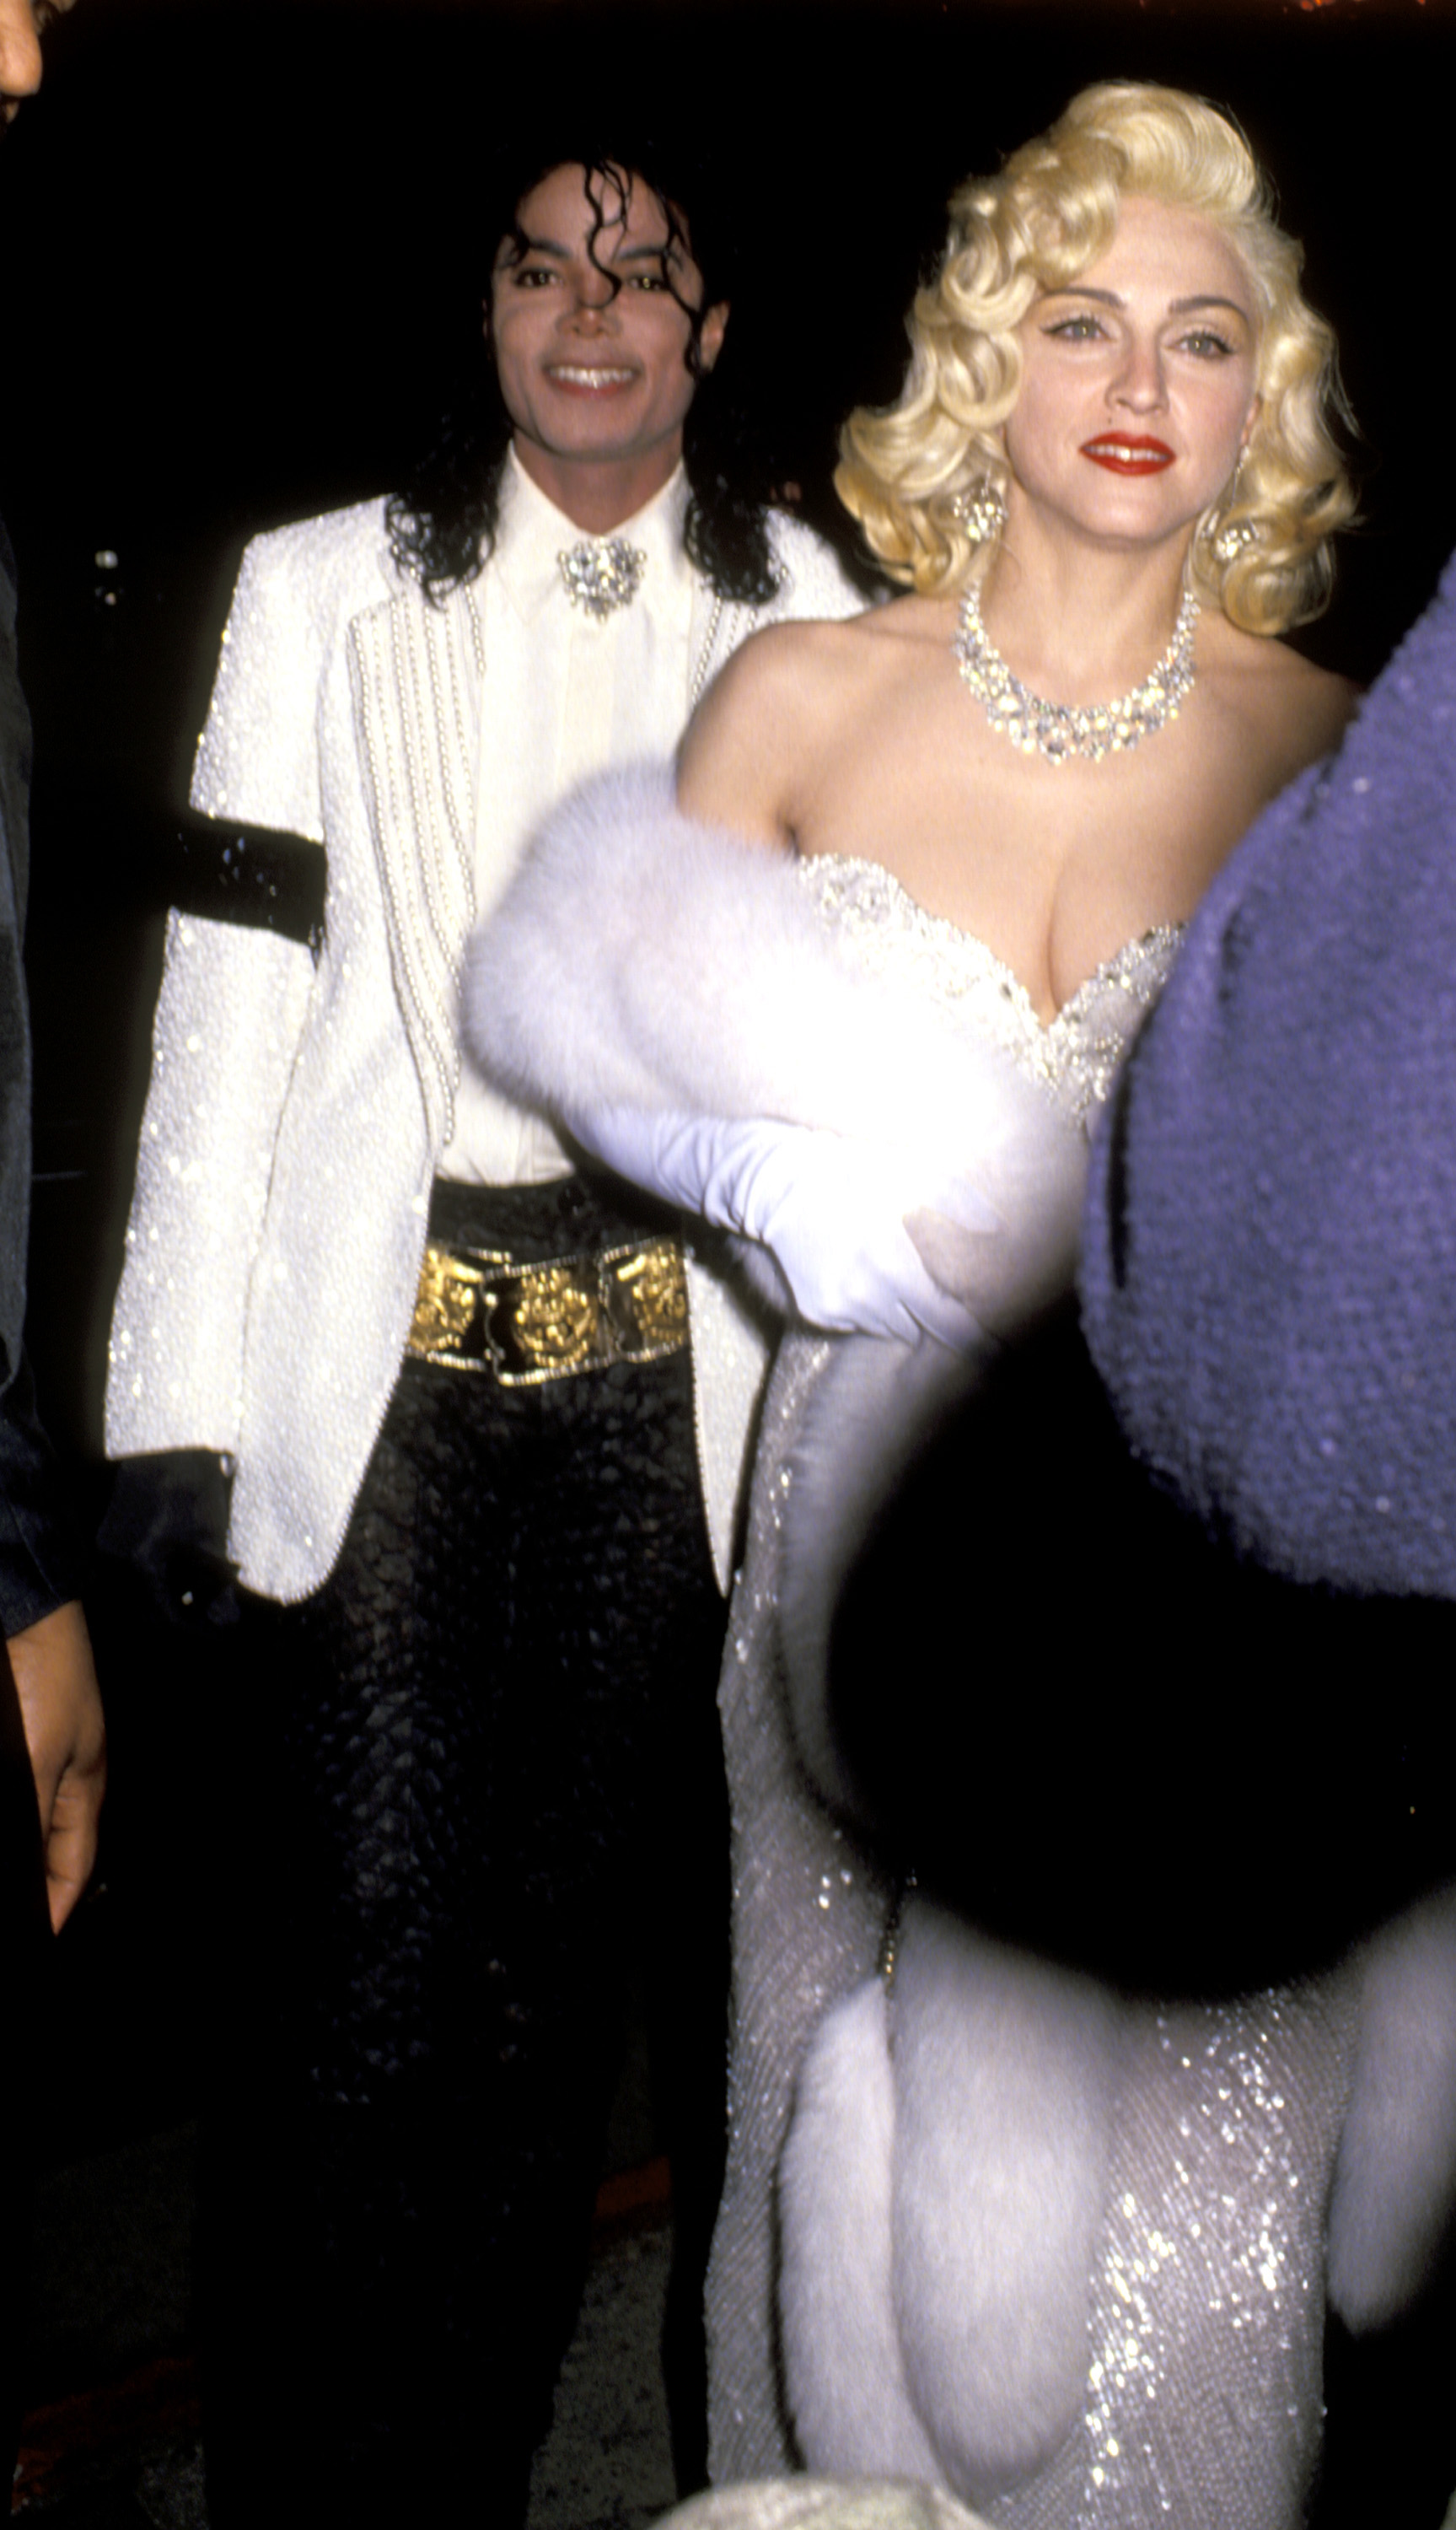 Michael Jackson and Madonna at the 63rd Annual Academy Awards - After Party at Spago's Hosted by Swifty Lazar on March 25, 1991 (Source: Ron Galella/WireImage)